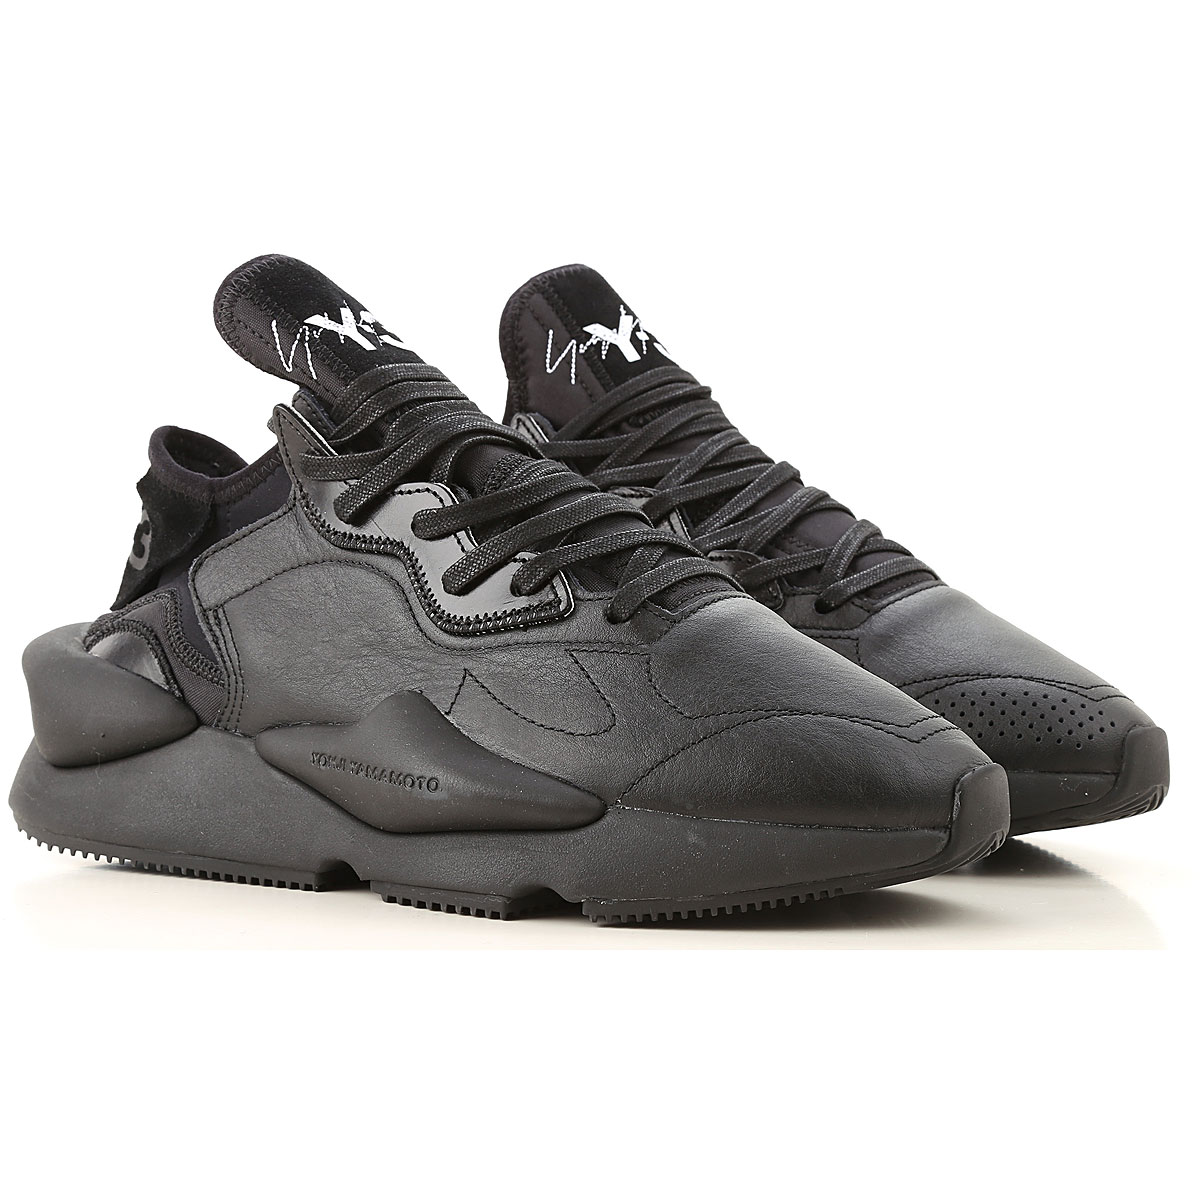 Y3 by Yohji Yamamoto Sneakers for Men On Sale, Black, Leather, 2019, 11.5 6